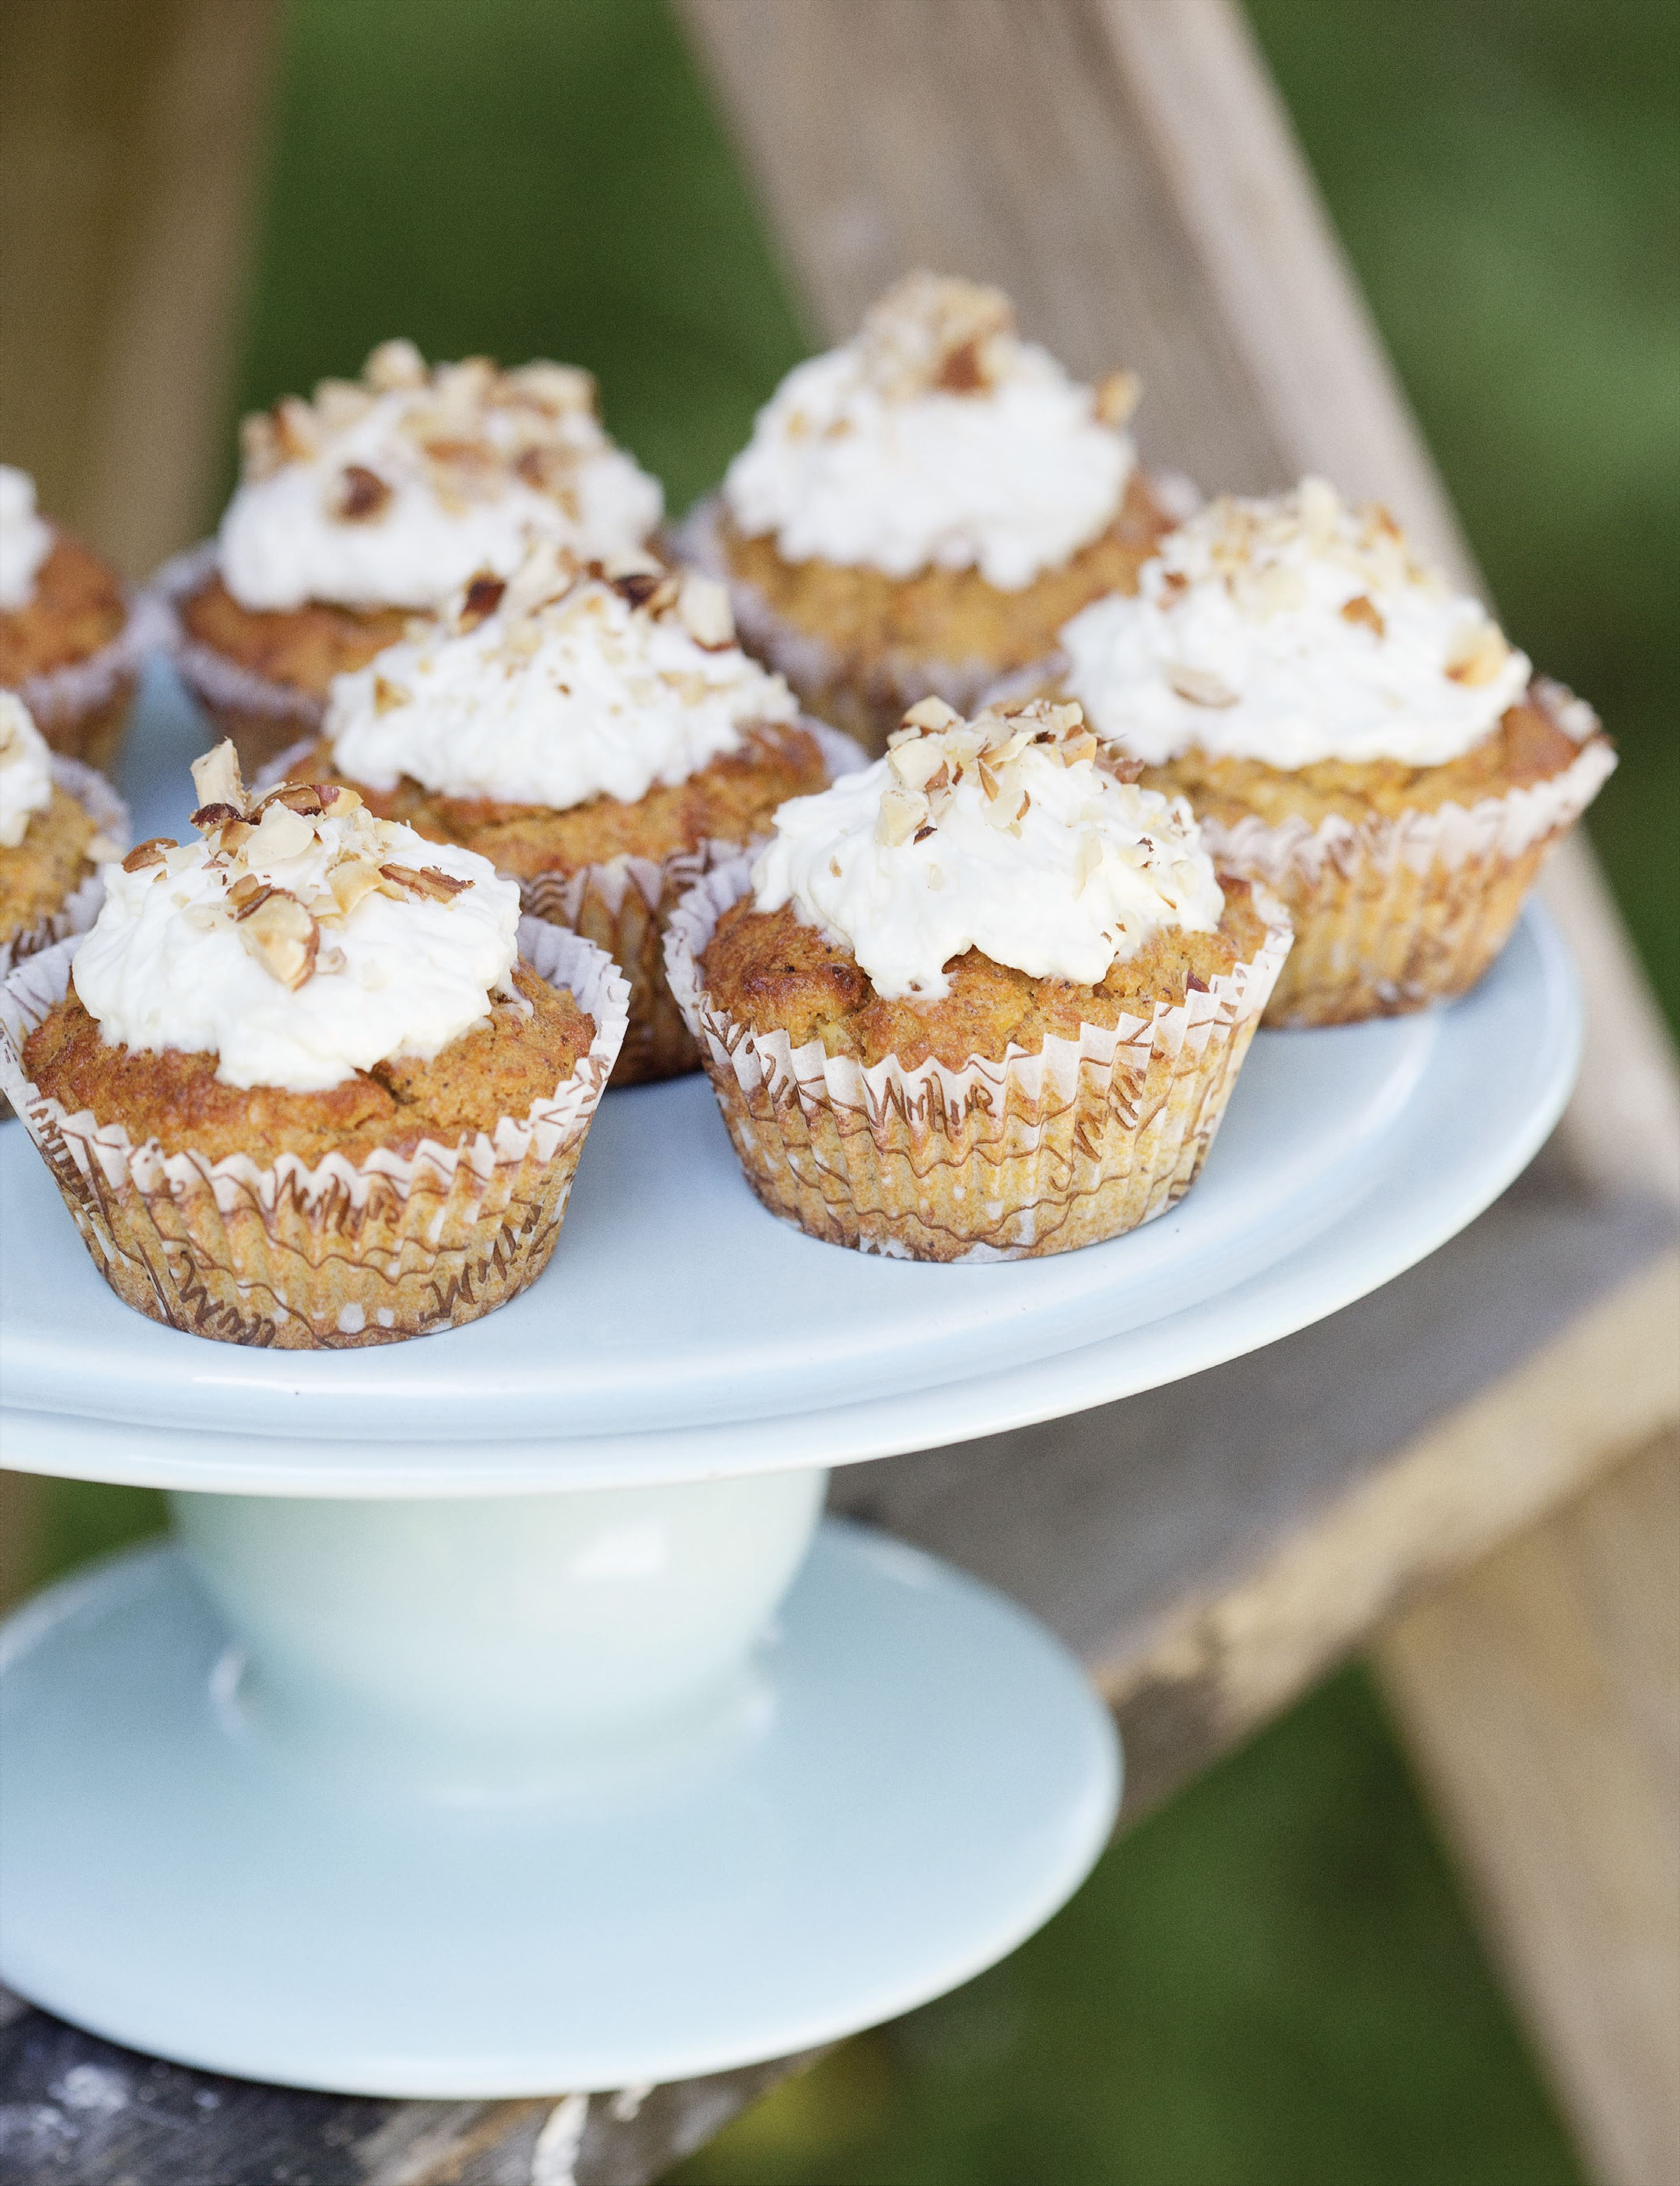 Carrot, coconut and banana cupcakes